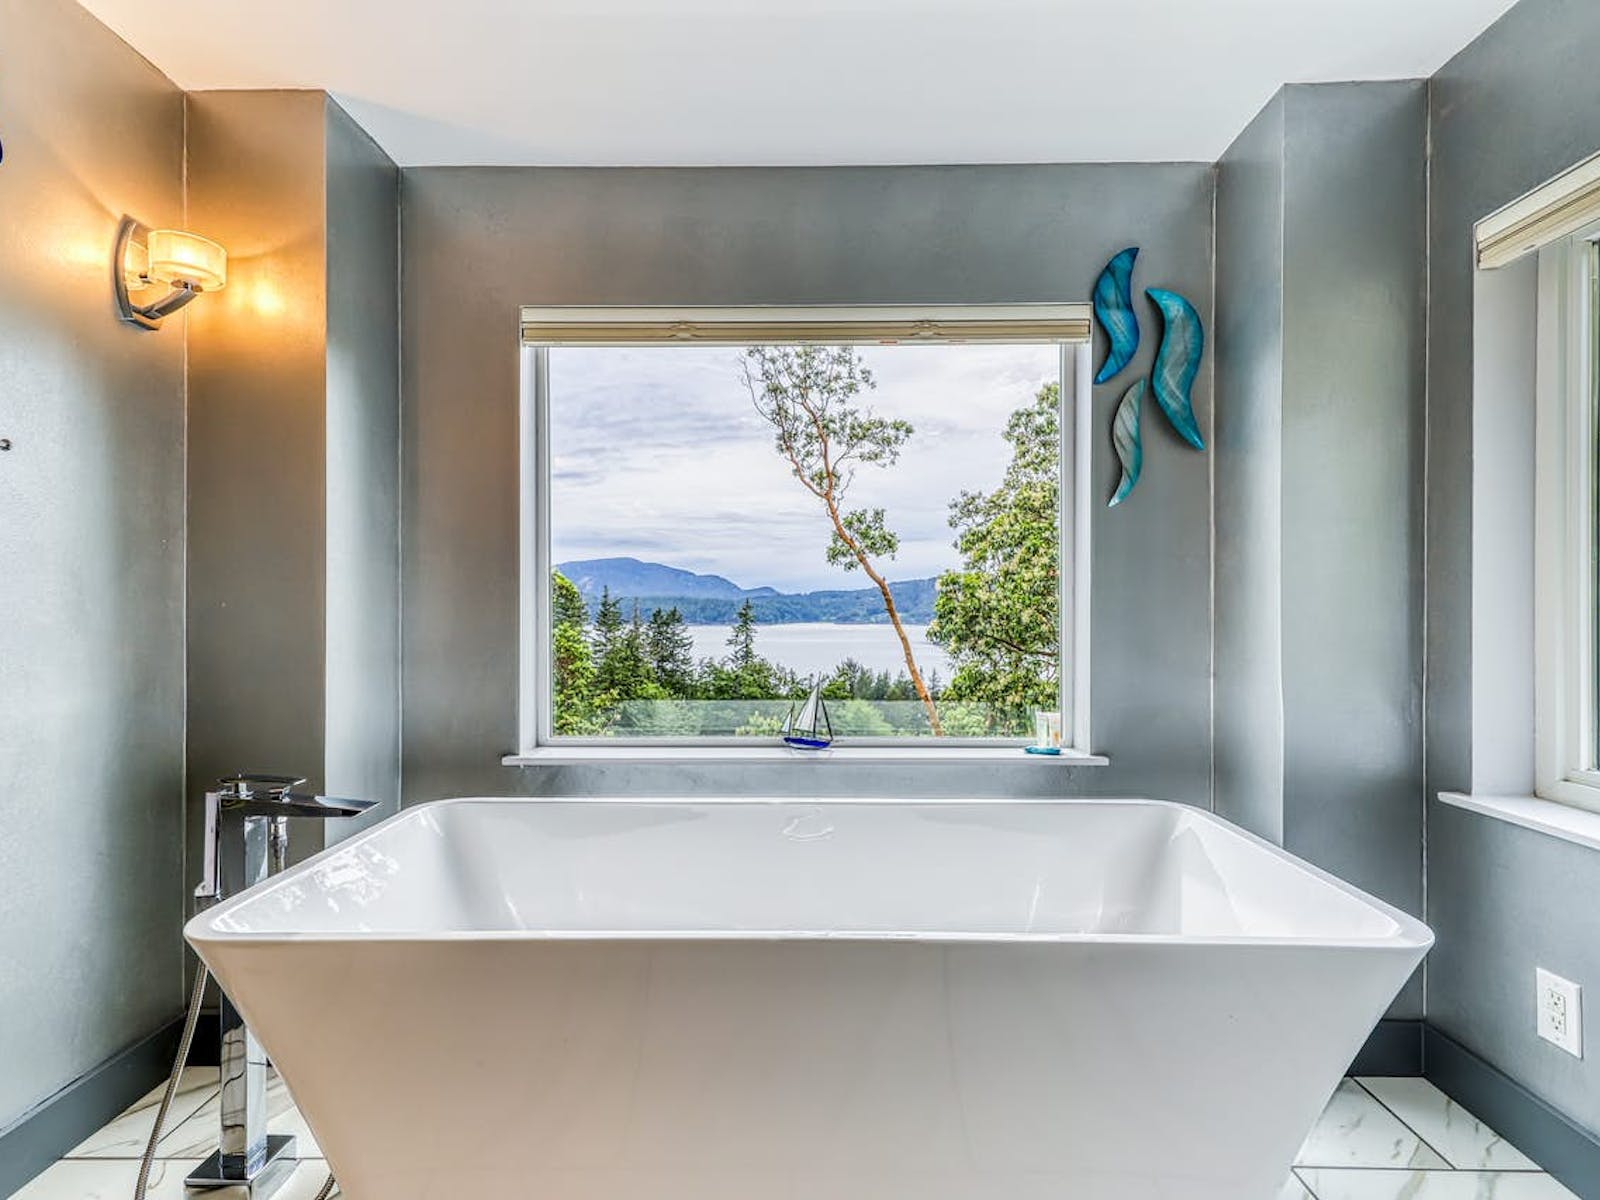 angular bathtub offers stunning views of the Puget Sound